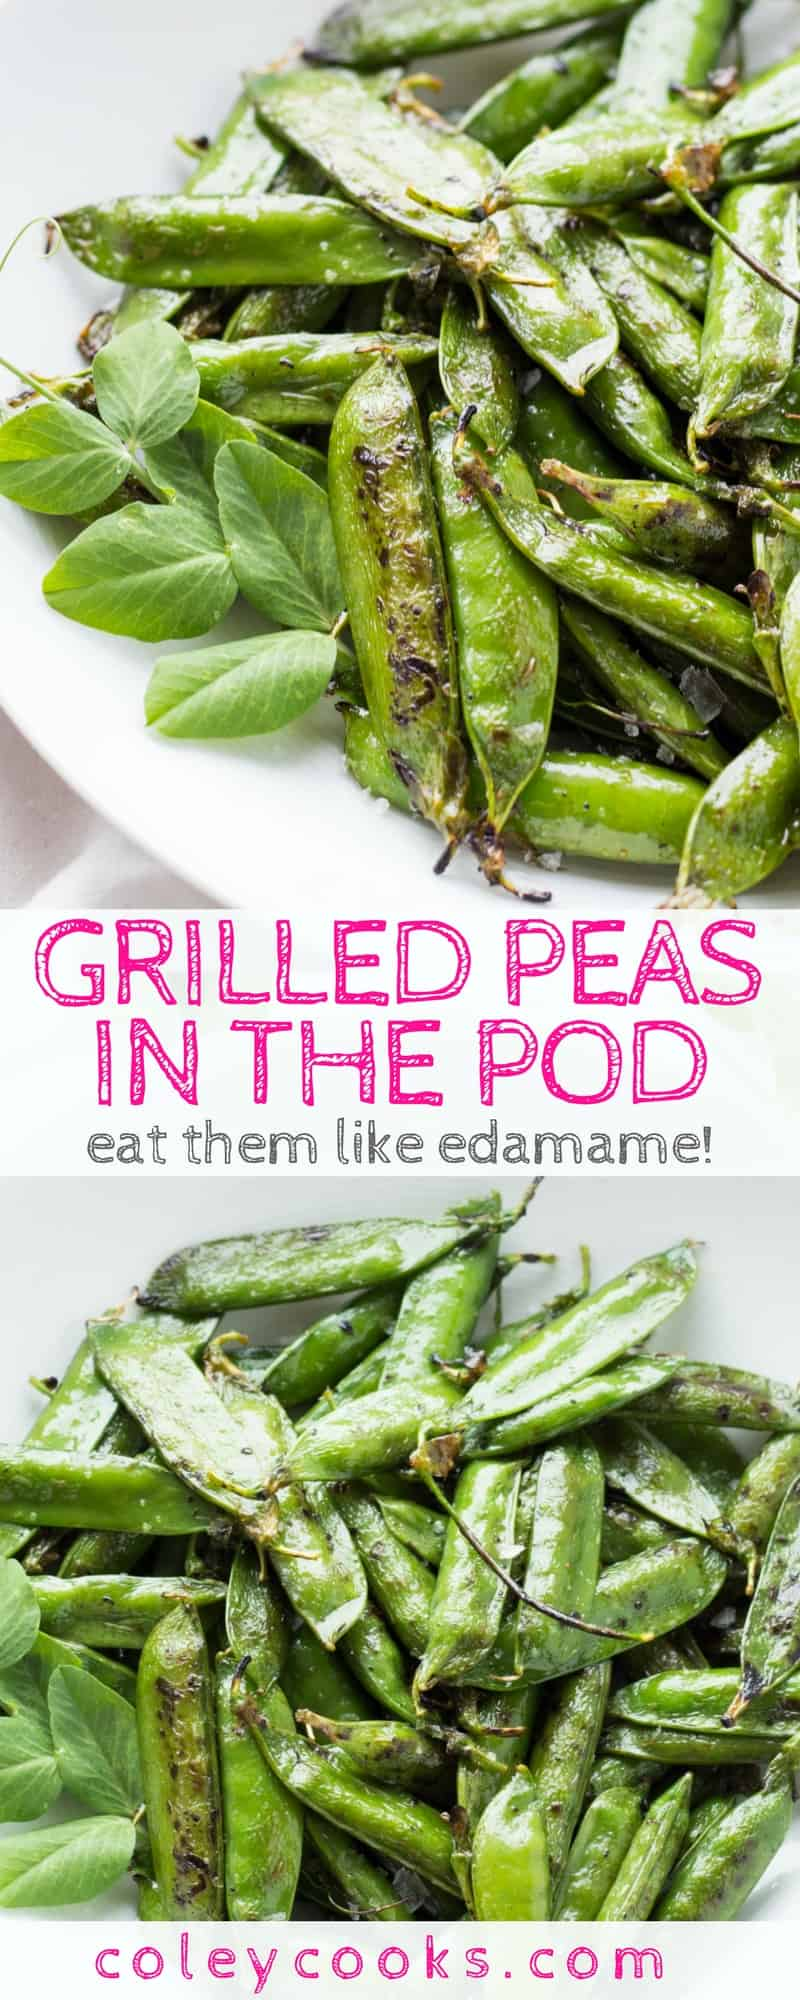 GRILLED PEAS IN THE POD | Easiest ever recipe for salted grilled peas in the pod. Eat them like edamame for a sweet, healthy, delicious snack! The best healthy snack recipe. Healthy snacking ideas! #glutenfree #vegan | ColeyCooks.com